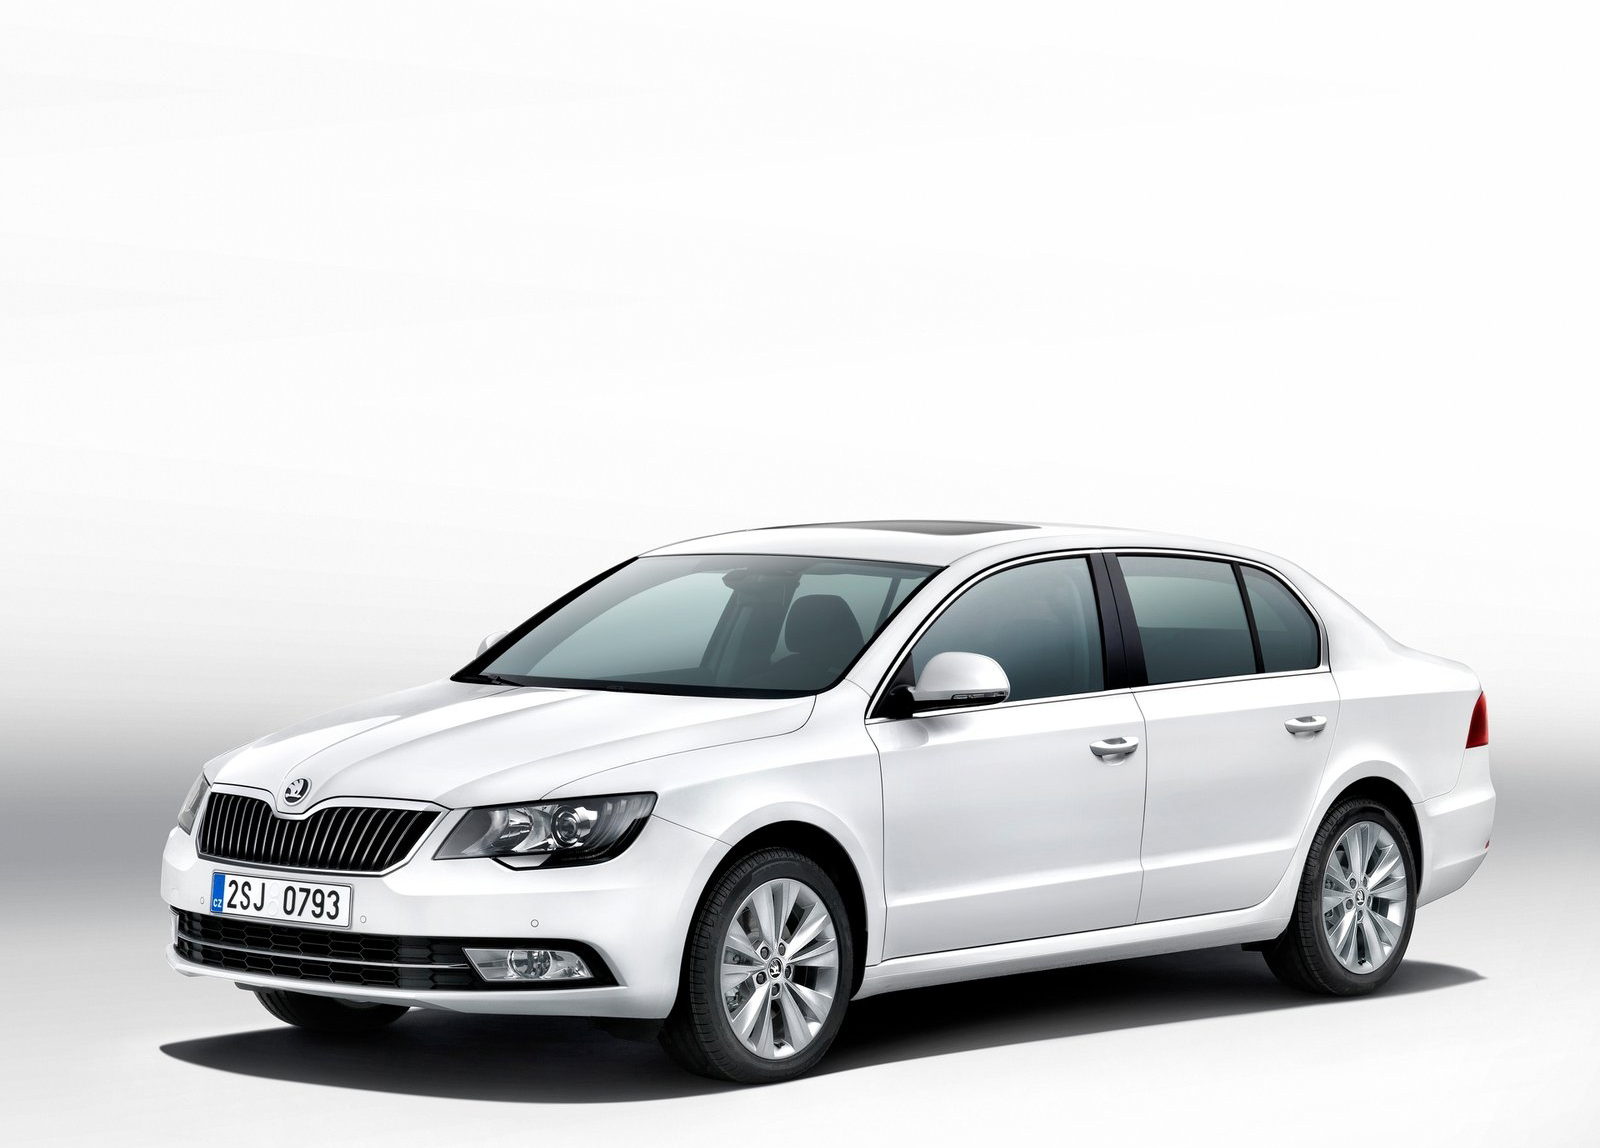 Car Auction Sites >> 2014 Skoda Superb News and Information | conceptcarz.com